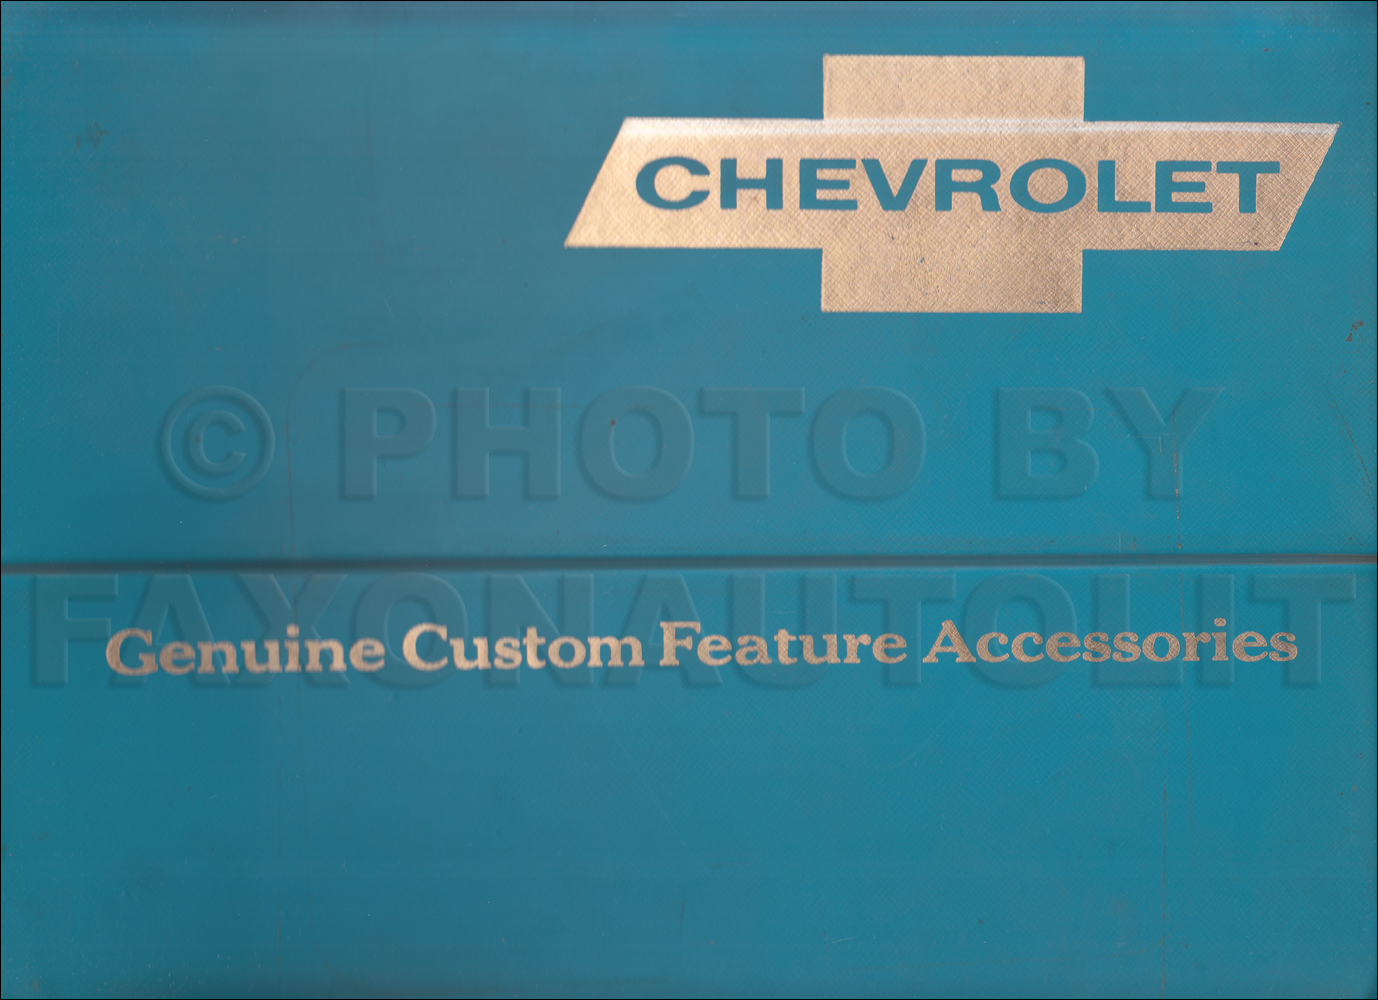 1967 Chevrolet Custom Feature Accessories Dealer Album Original